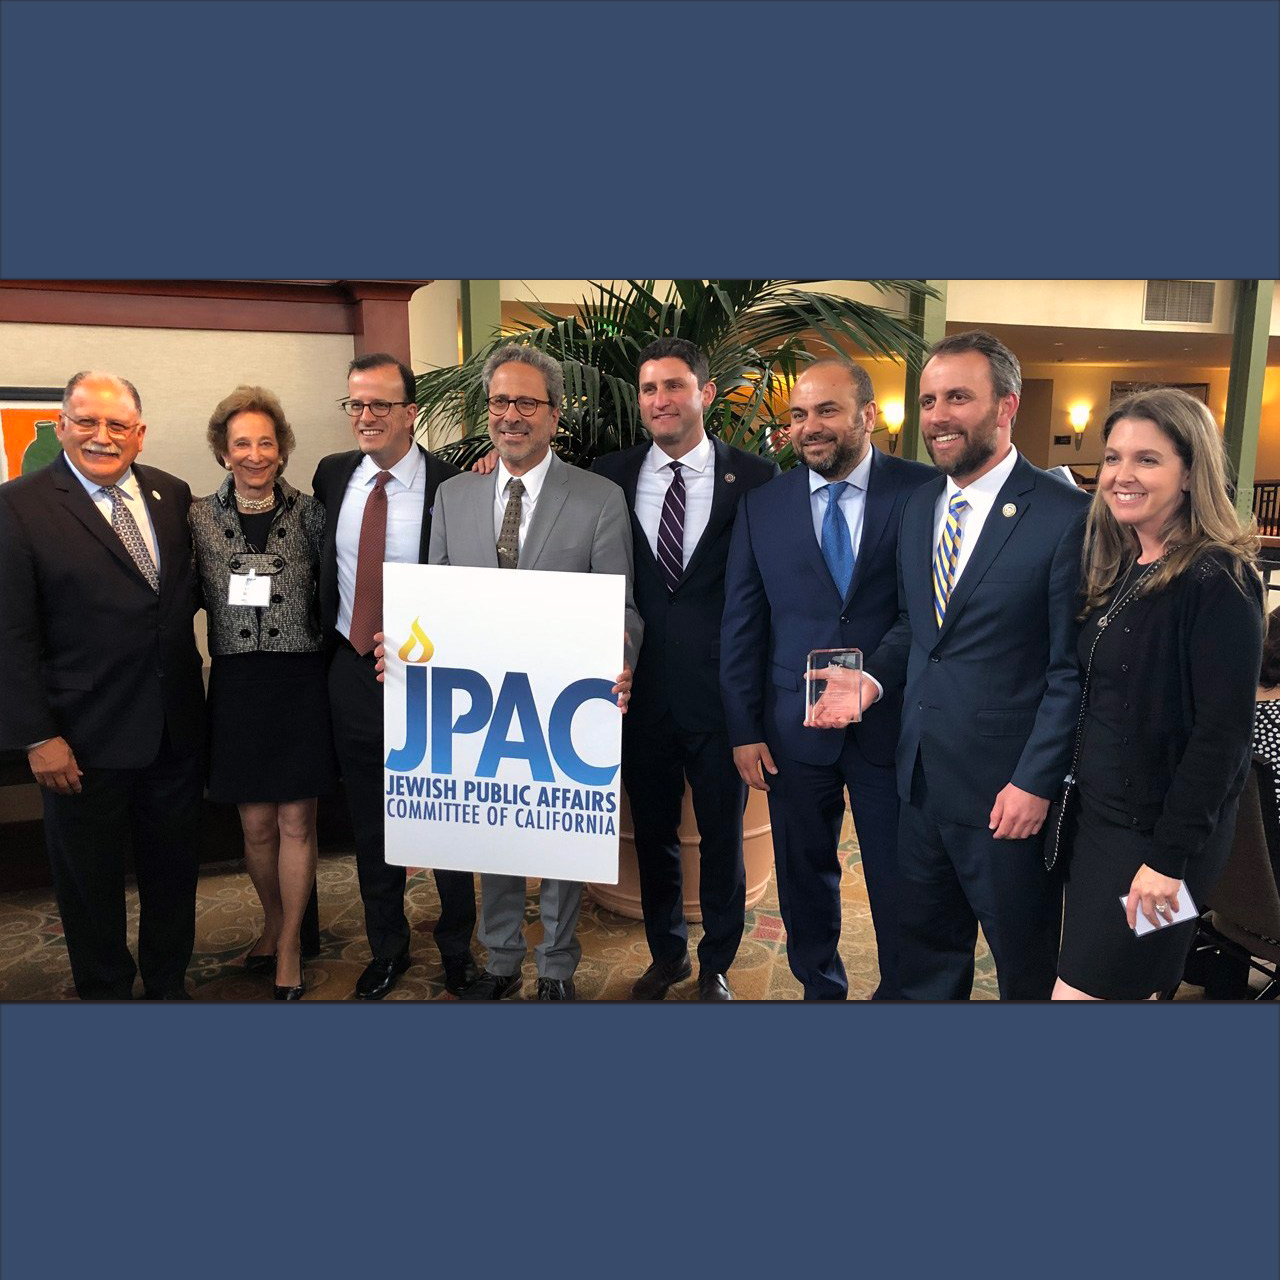 Jewish Advocates Get Face-To-Face Time With Sacramento Legislators